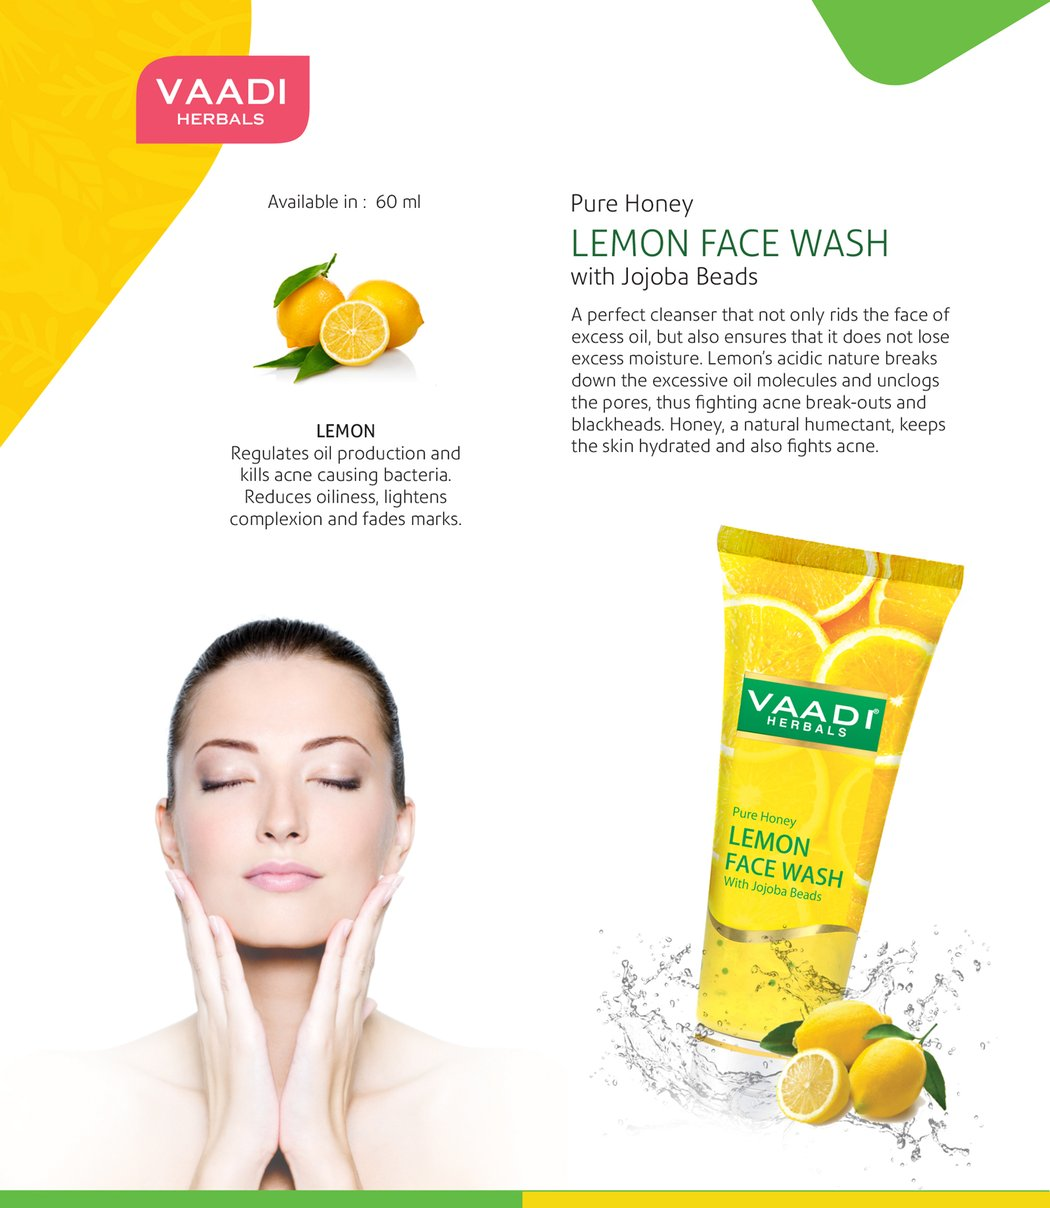 Skin Hydrating Organic Lemon Face Wash with Jojoba Beads - Removes Excess Oil - Prevents Acne (60 ml / 2.1 fl oz)